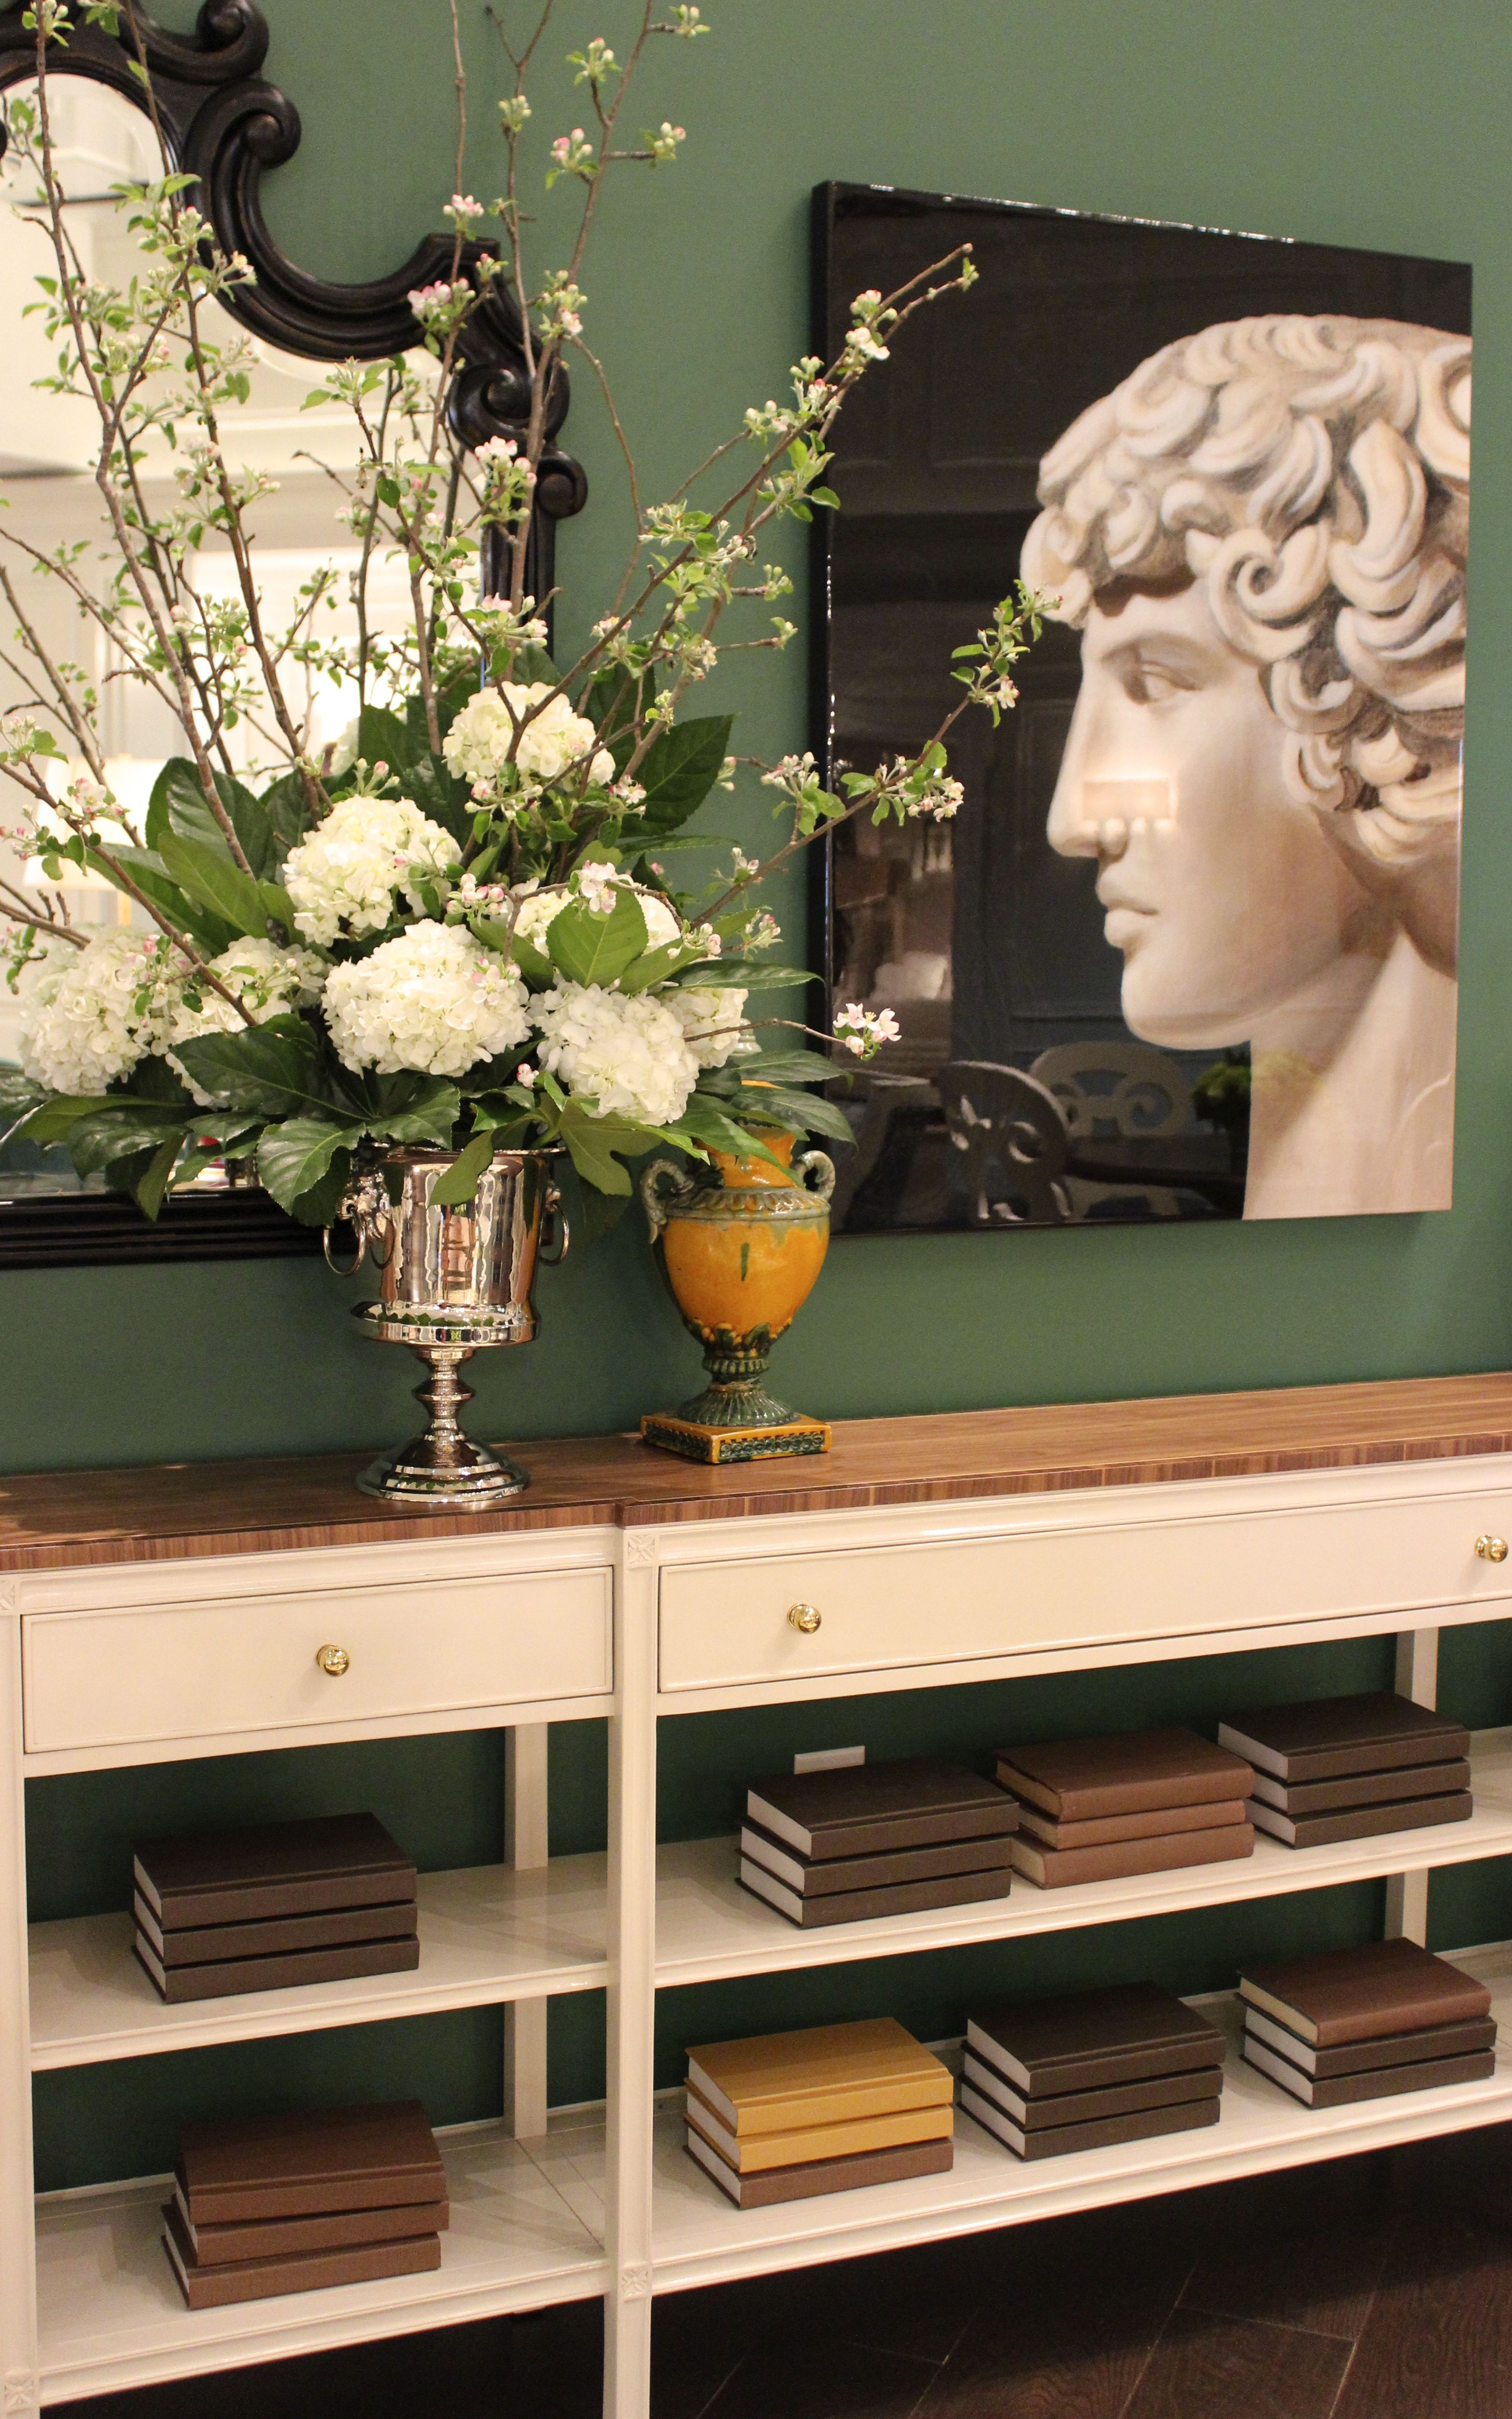 Stanley furniture 200 north hamilton from the brand new charleston regency collection carolina sofa table item 302 25 07 finish ropemakers white with